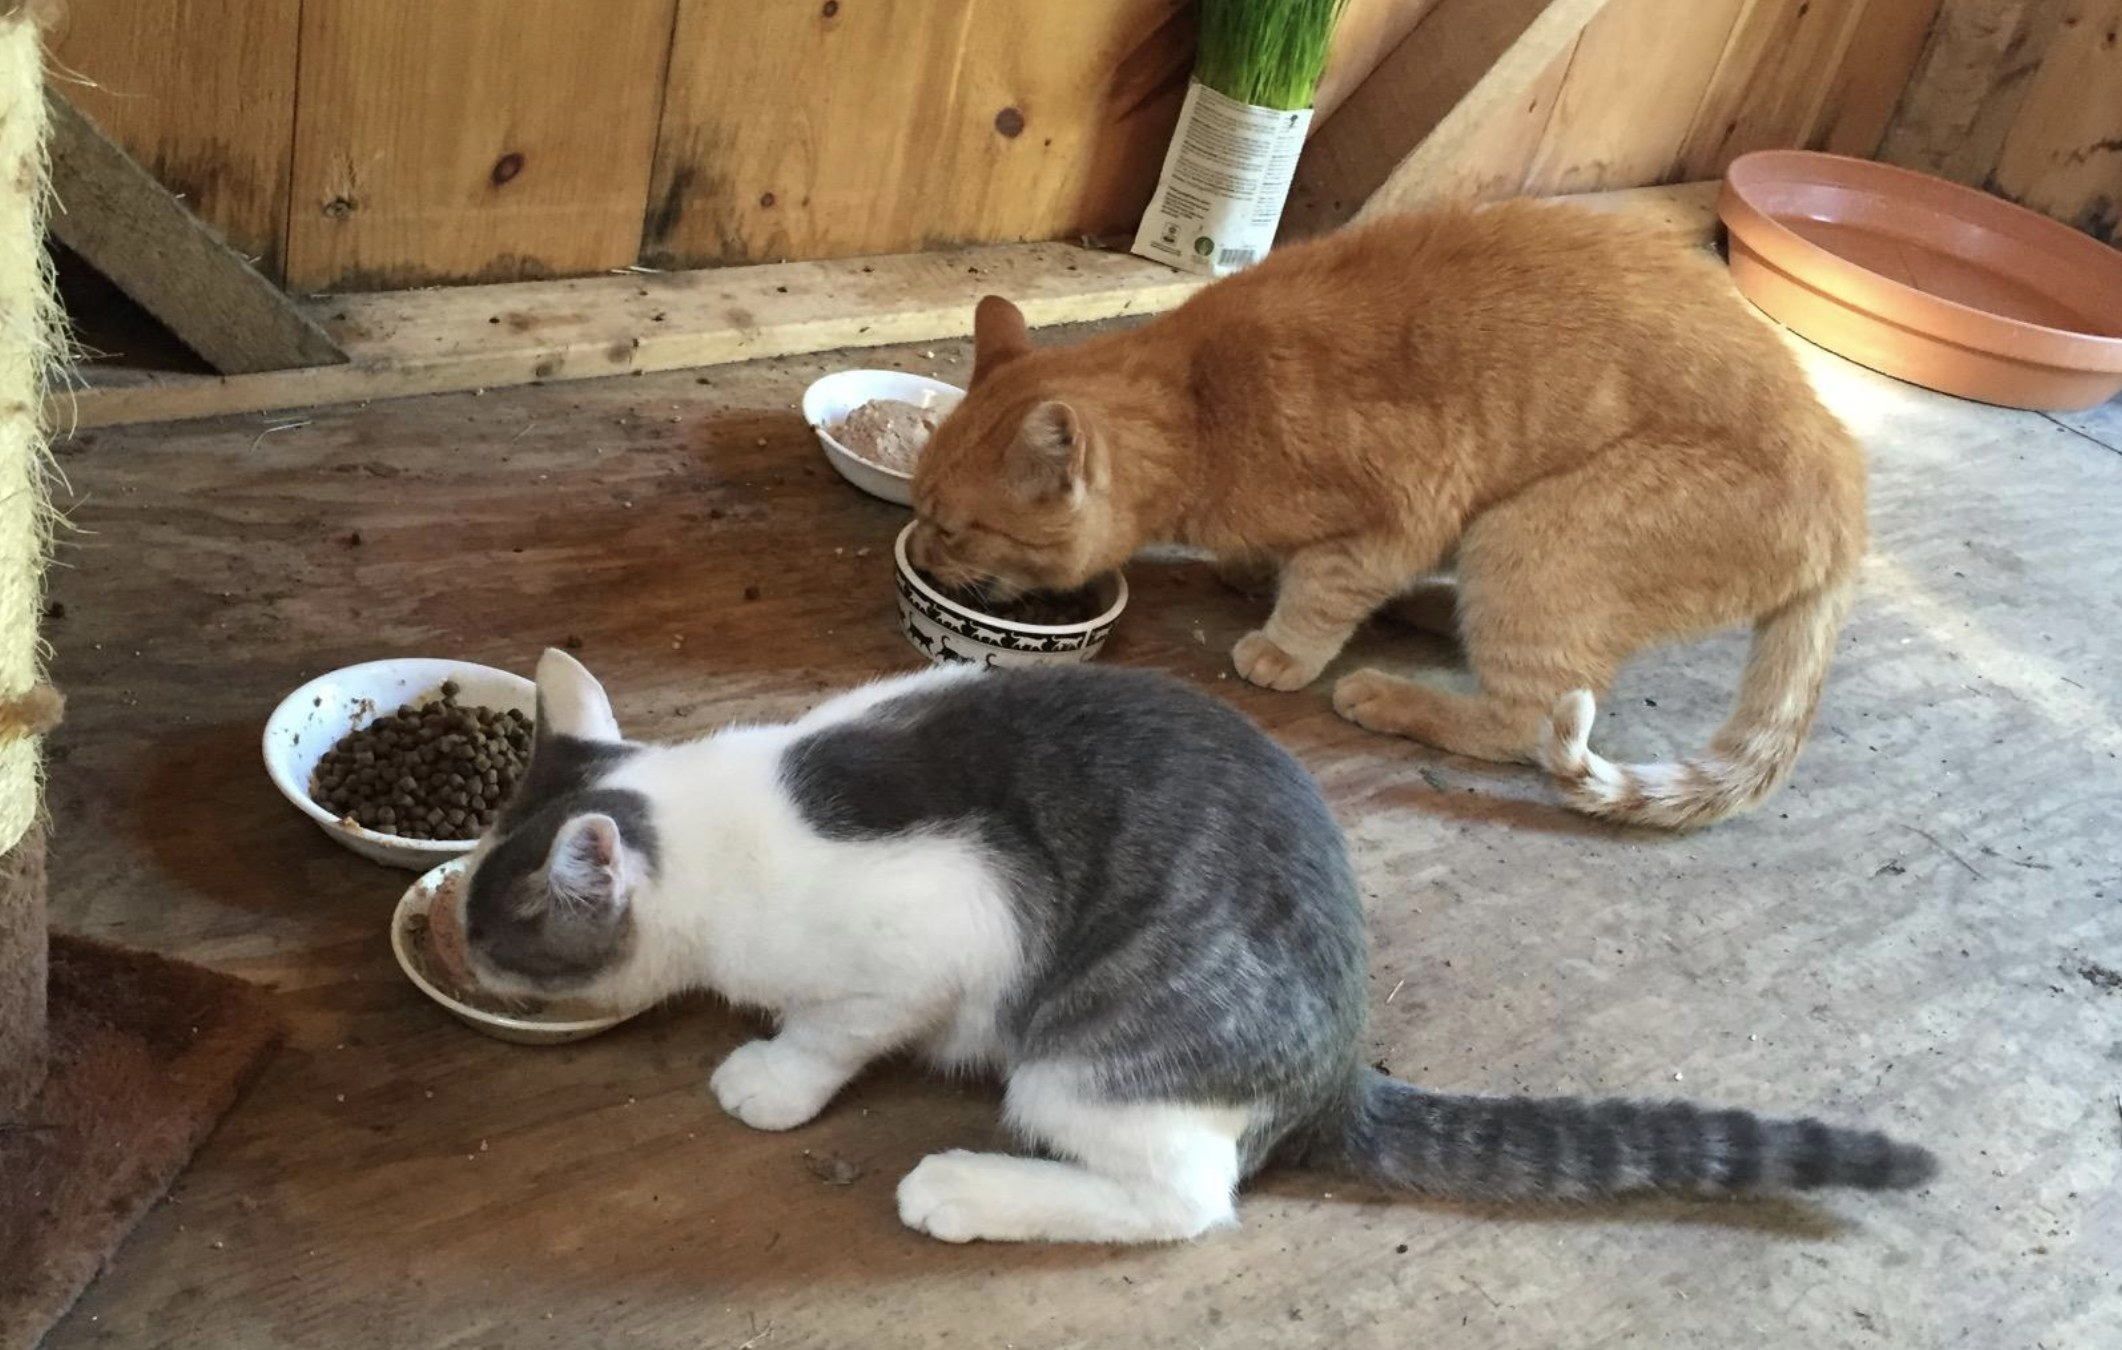 two cats in a barn eating dry food